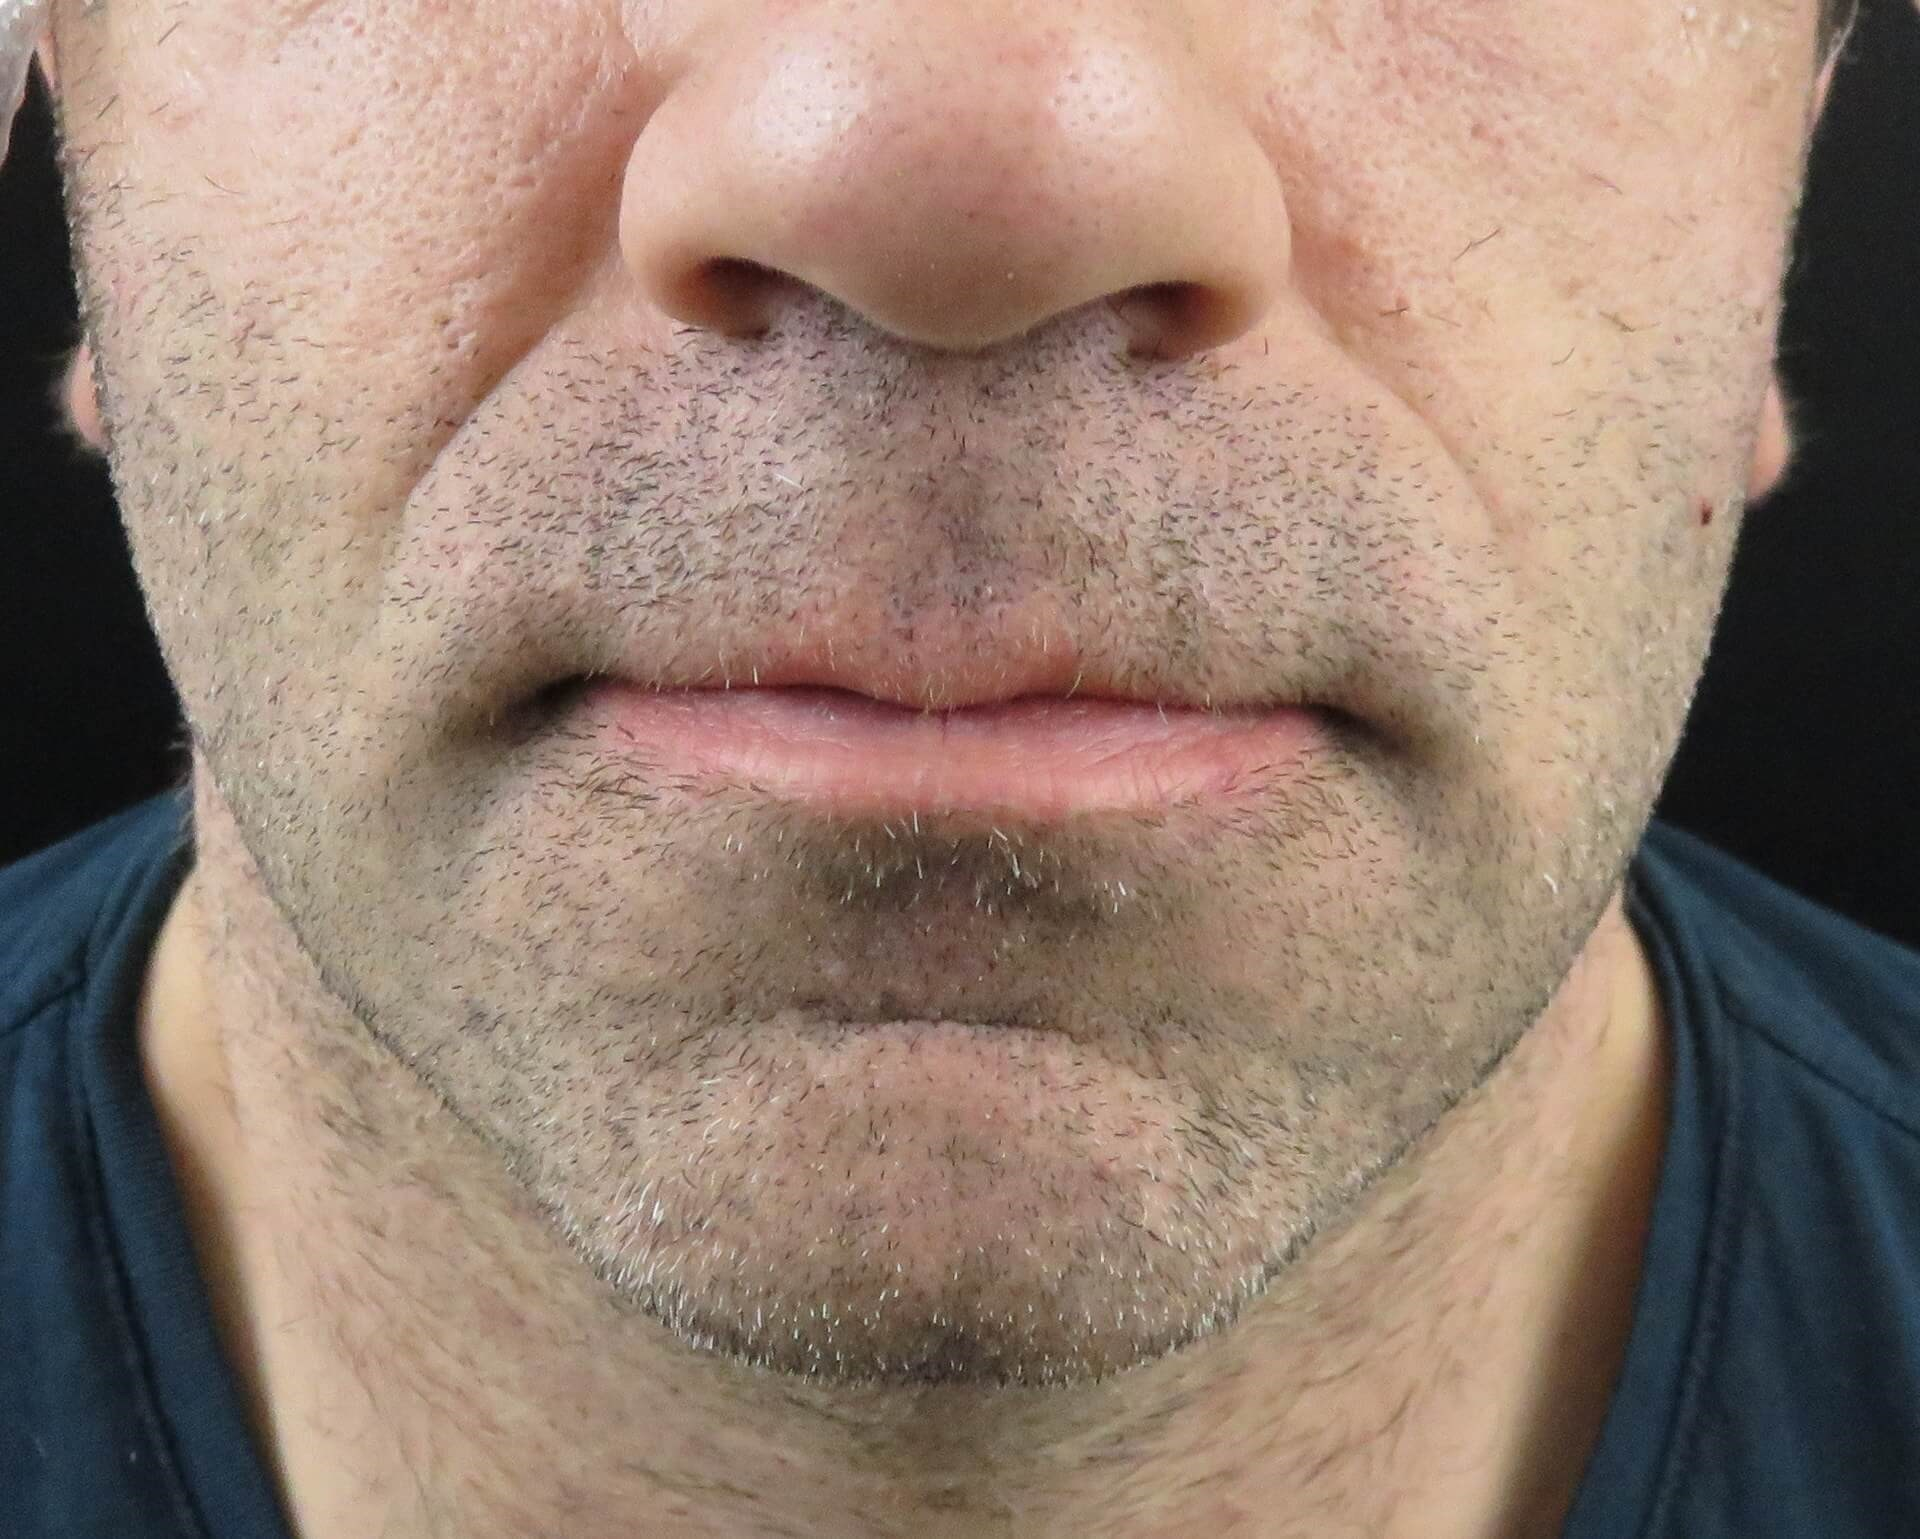 Juvederm - Nasolabial Folds Before Juvederm Injections